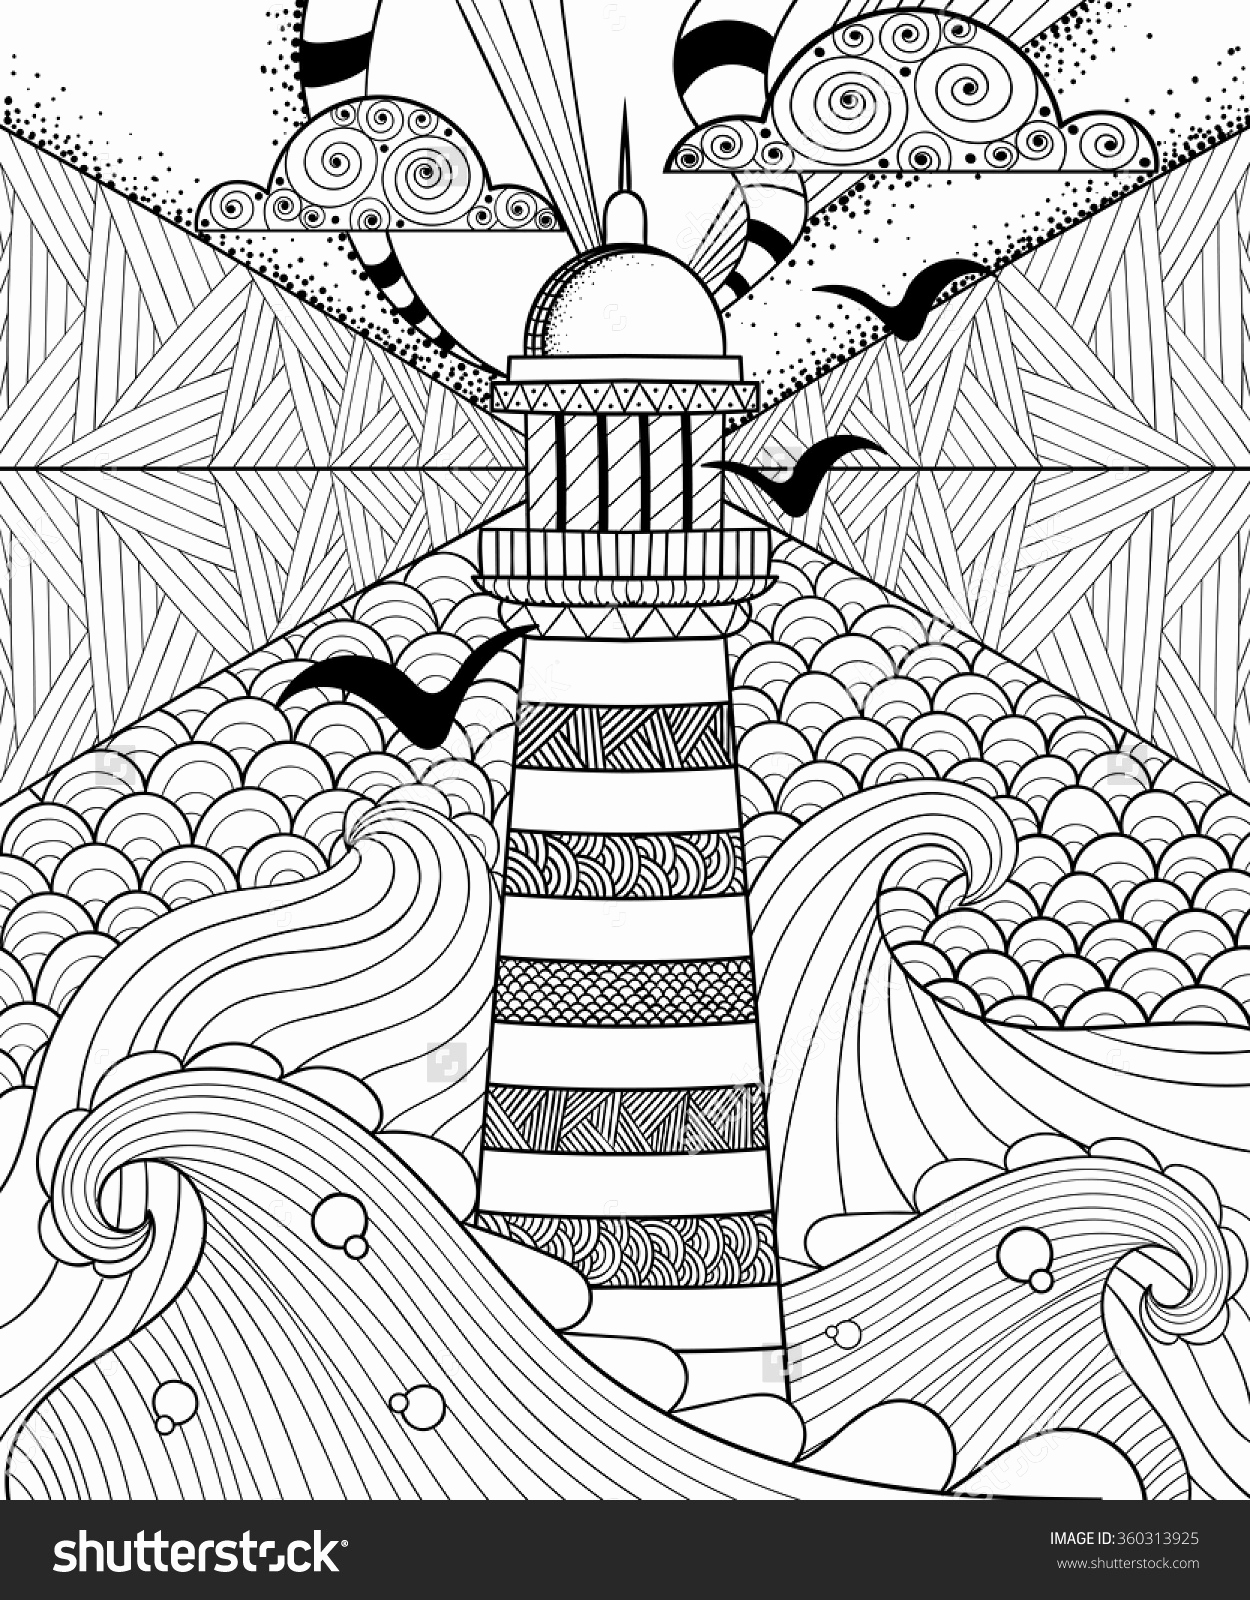 1250x1600 Elegant Pictures Of Lighthouse Coloring Pages